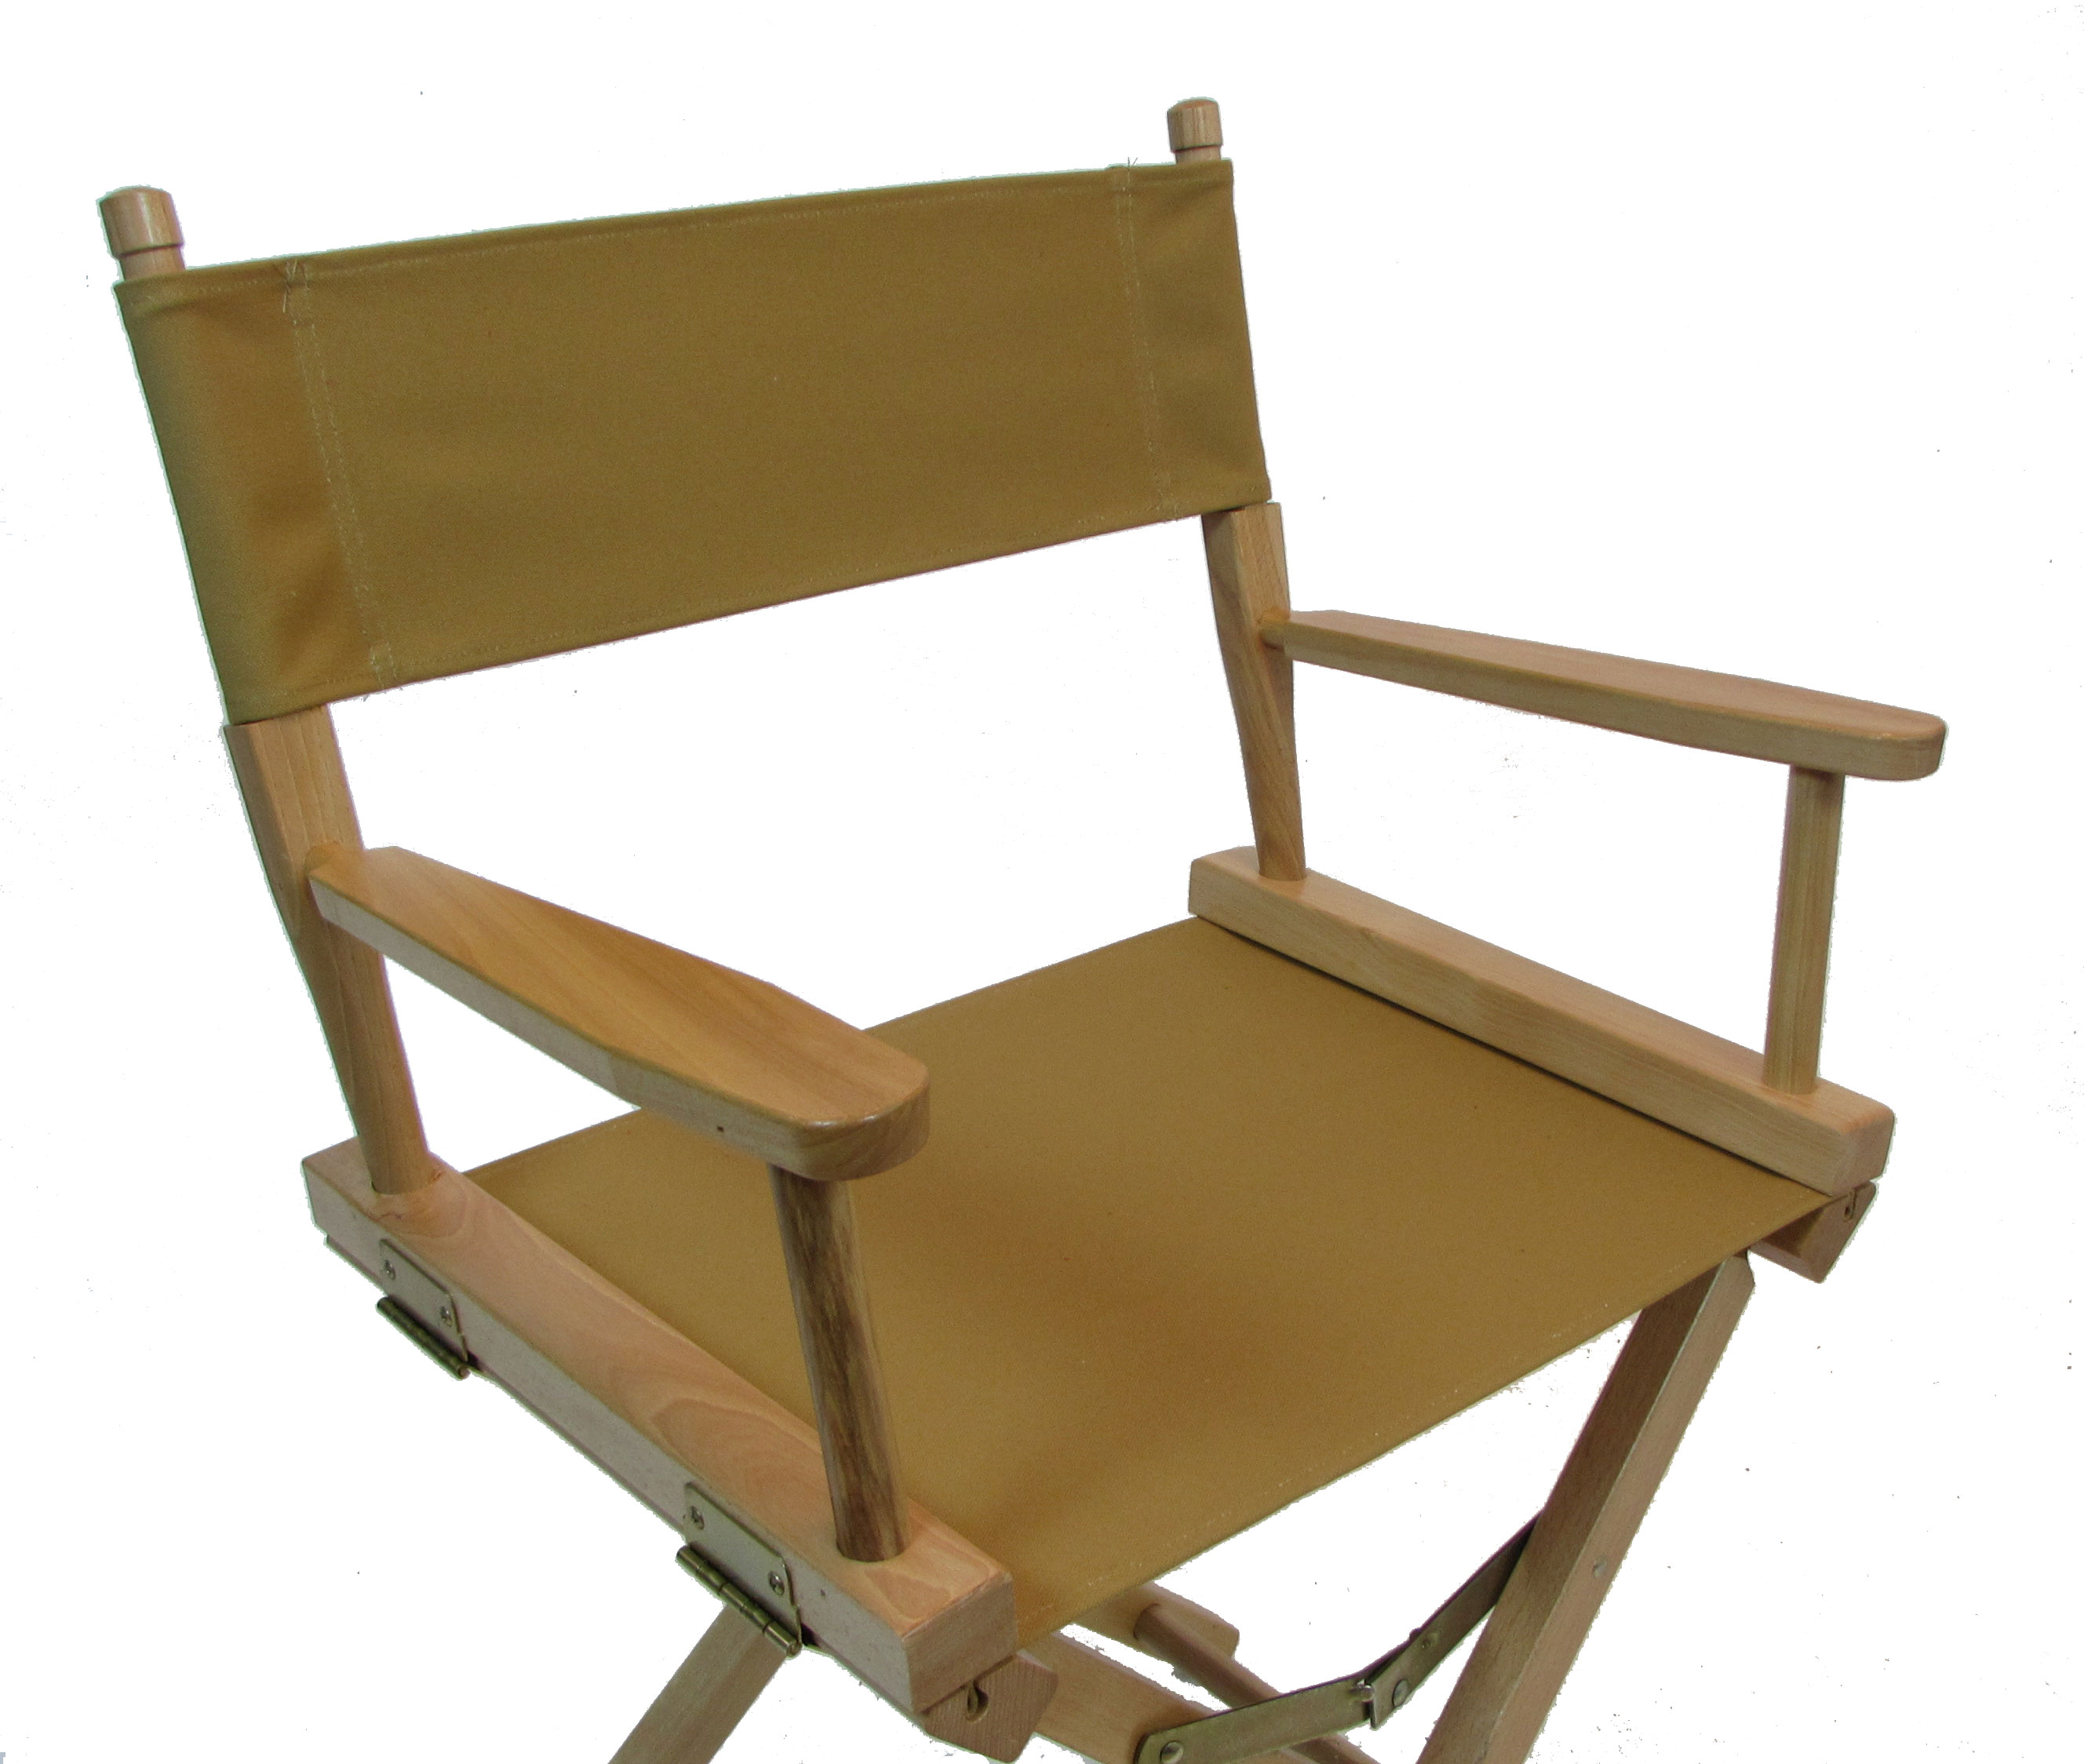 director chair replacement covers ebay yume massage everywhere canvas for 39s